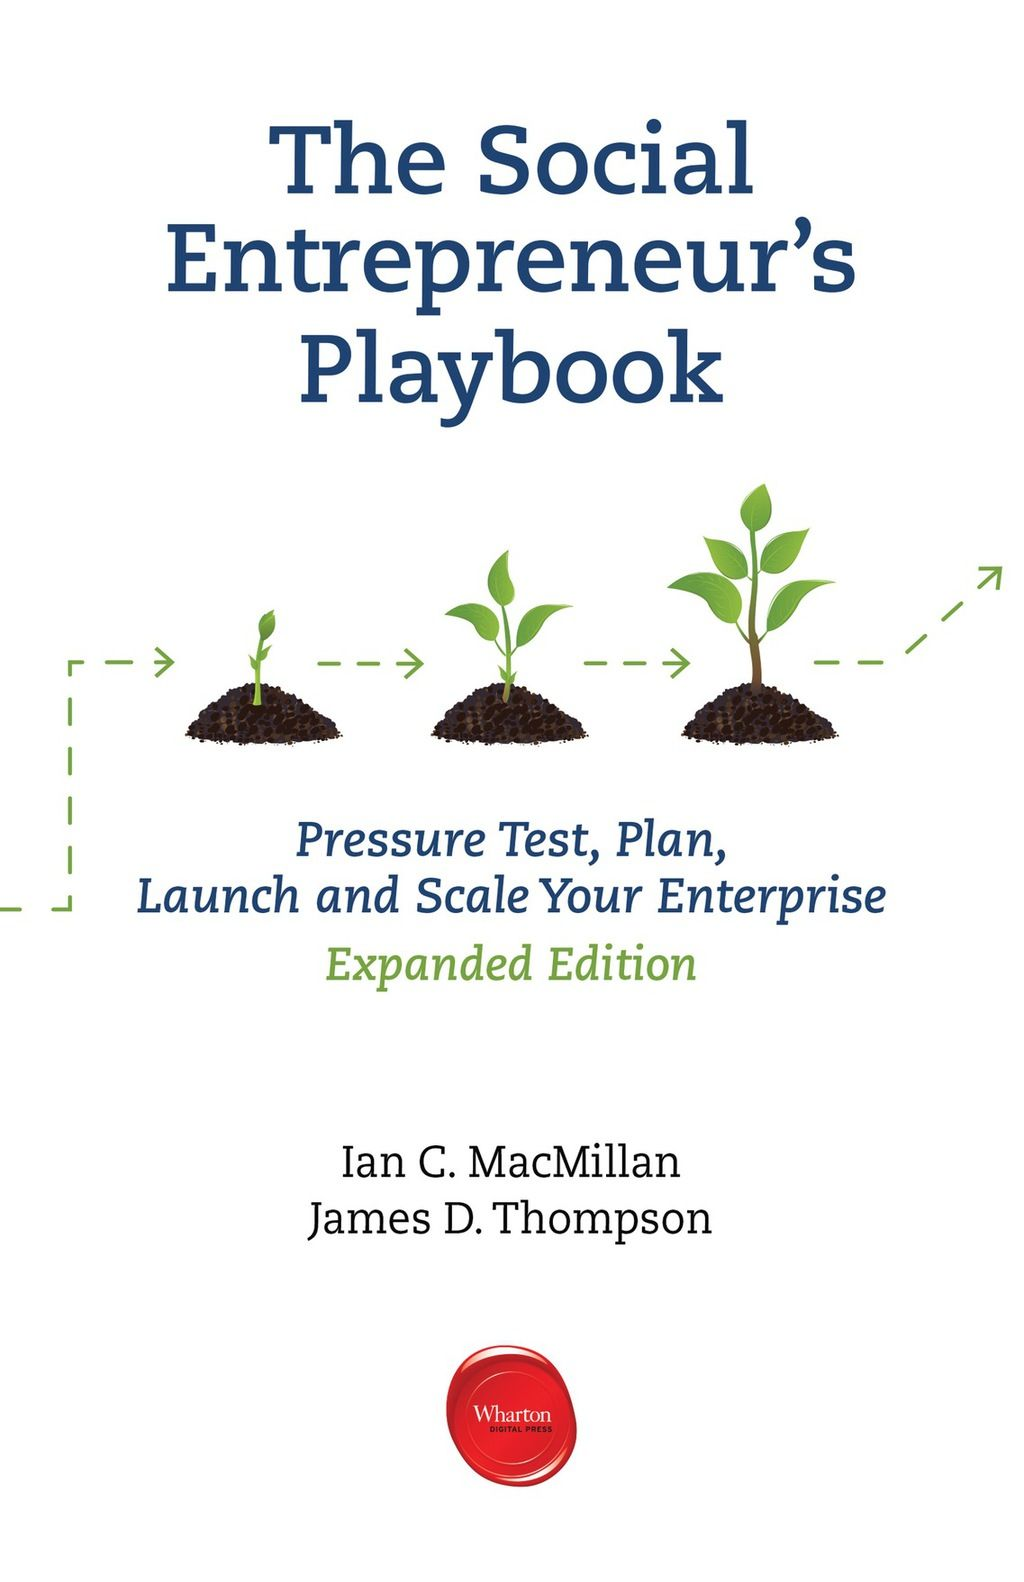 The Social Entrepreneur's Playbook Expanded Edition (eBook